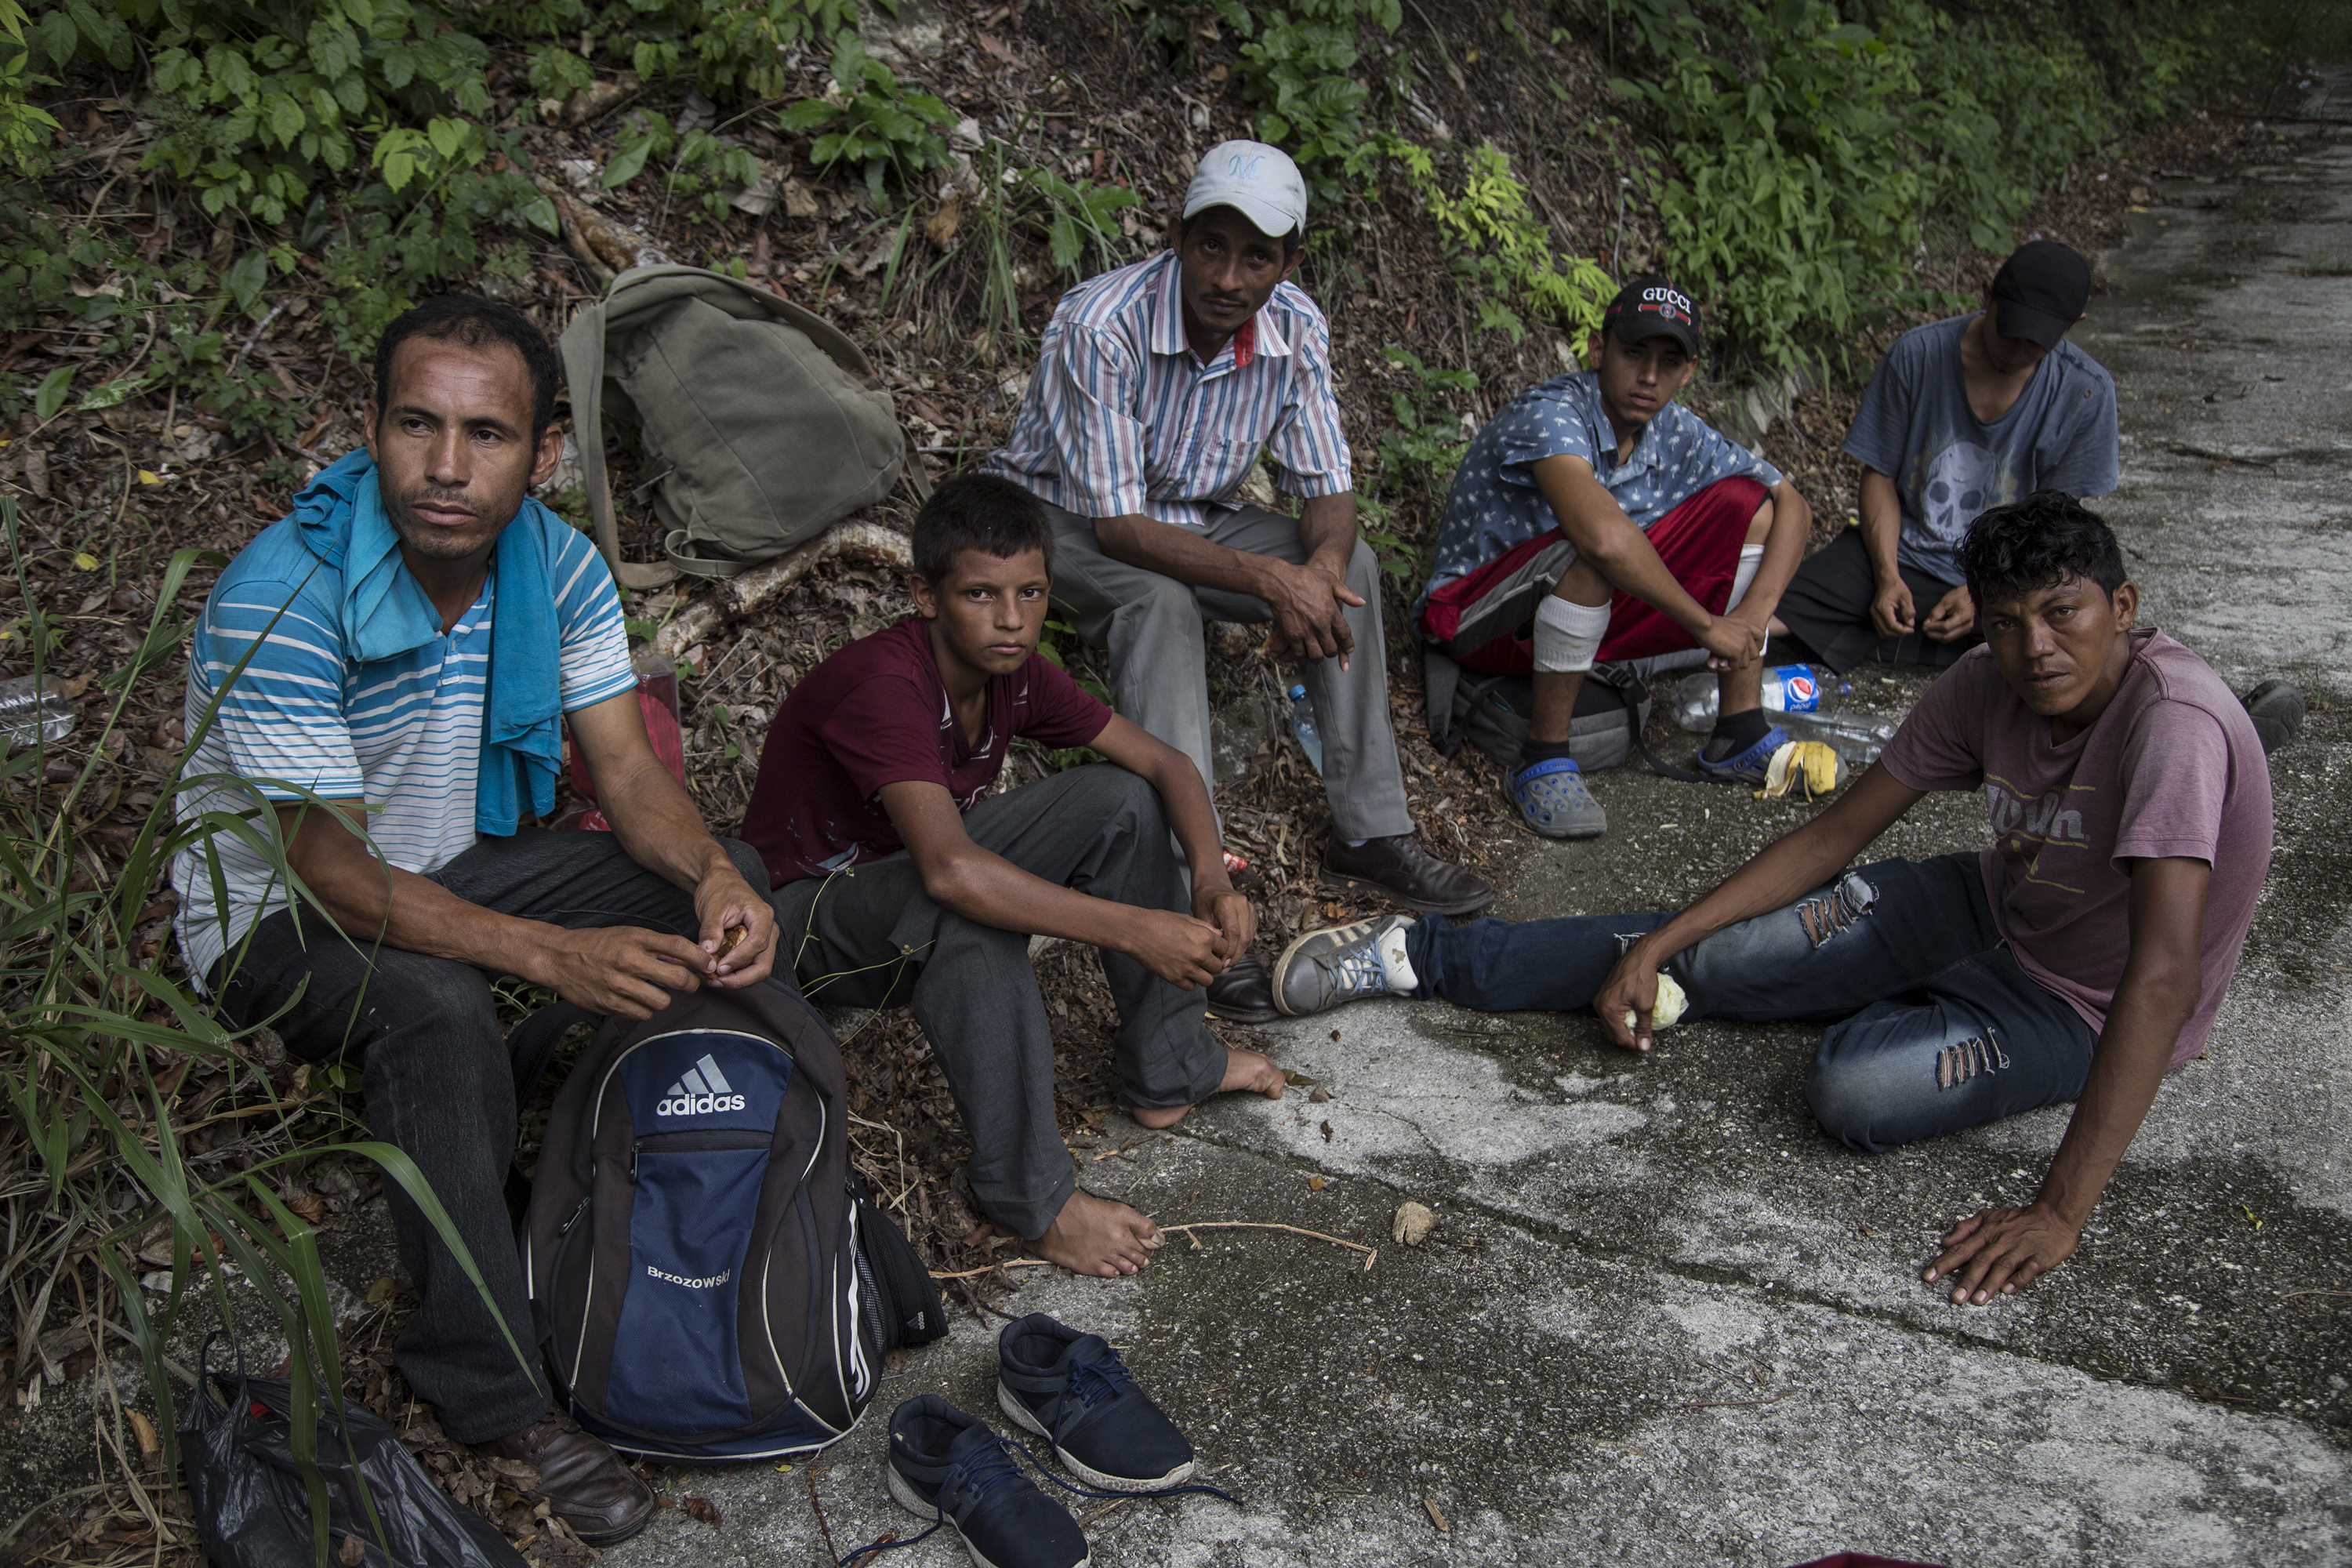 Central American Migrants Cross The Mexican Southern Border On Their Way To The US